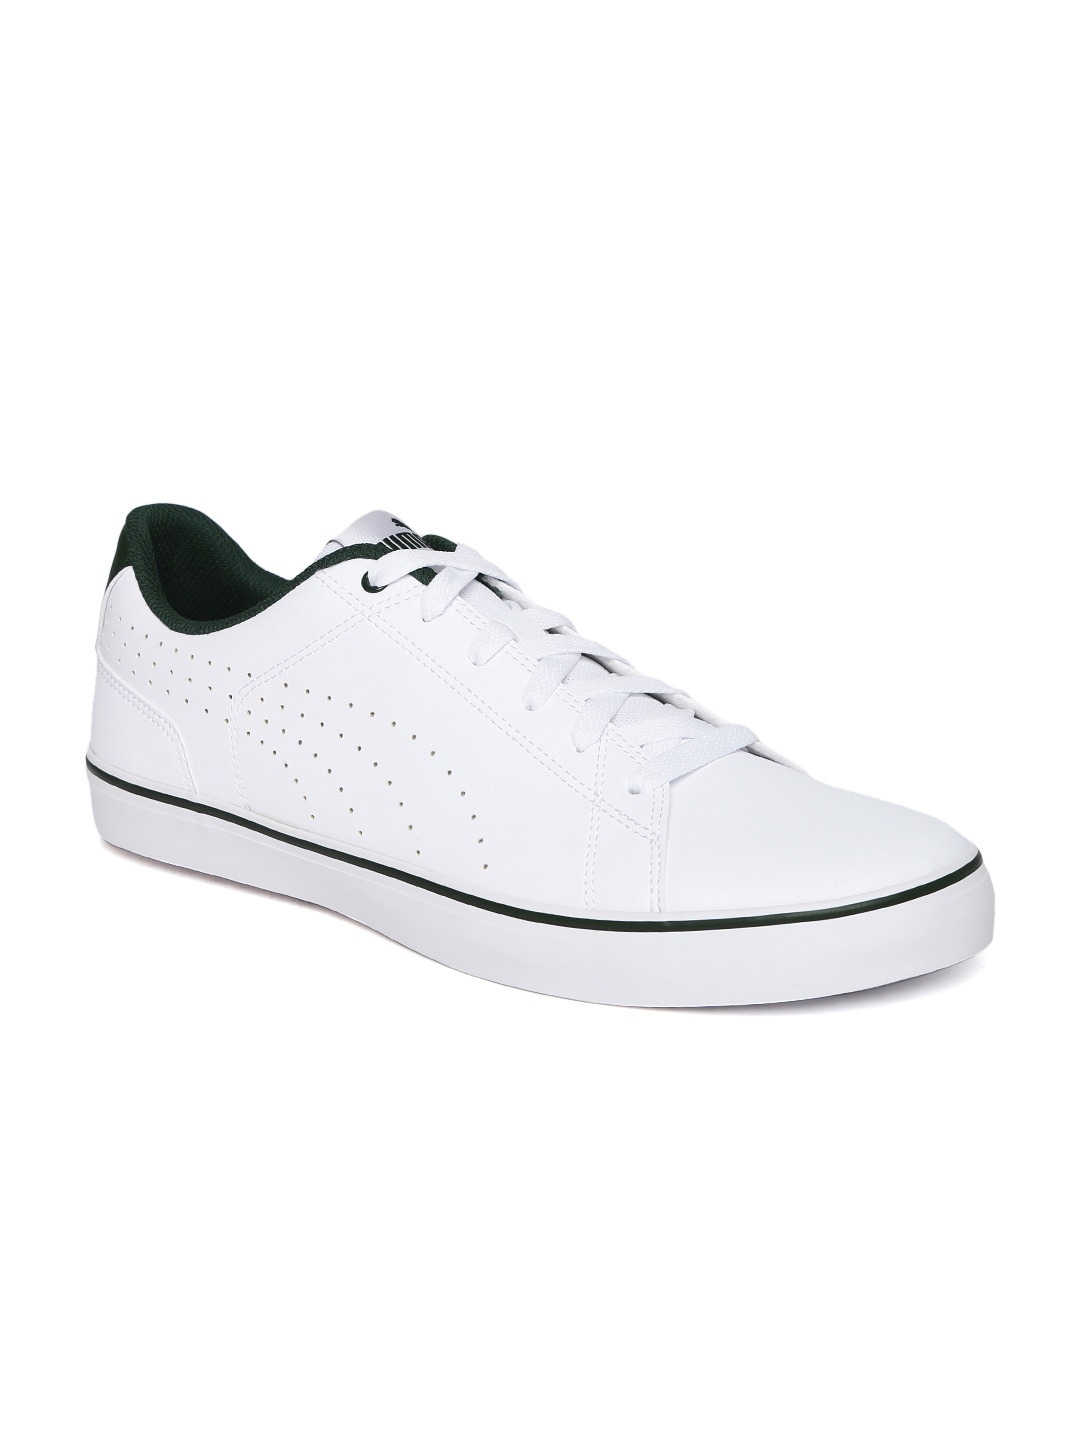 fcdf99010a662c Puma Shoe For Men Casual Shoes Apparel Set - Buy Puma Shoe For Men Casual  Shoes Apparel Set online in India